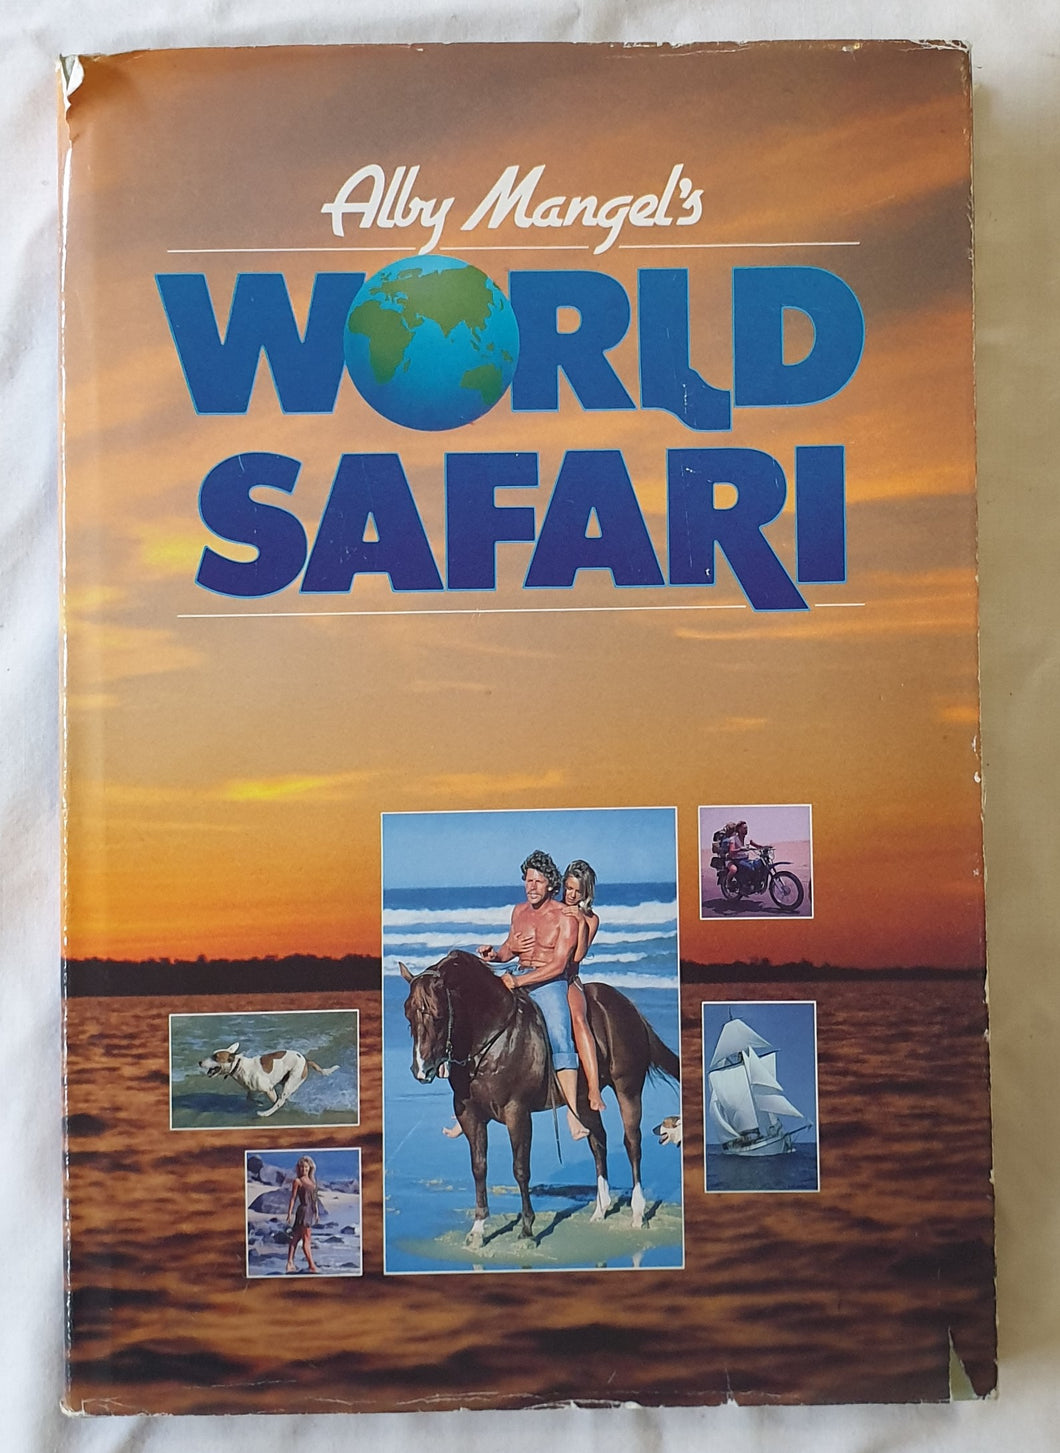 Alby Mangel's World Safari